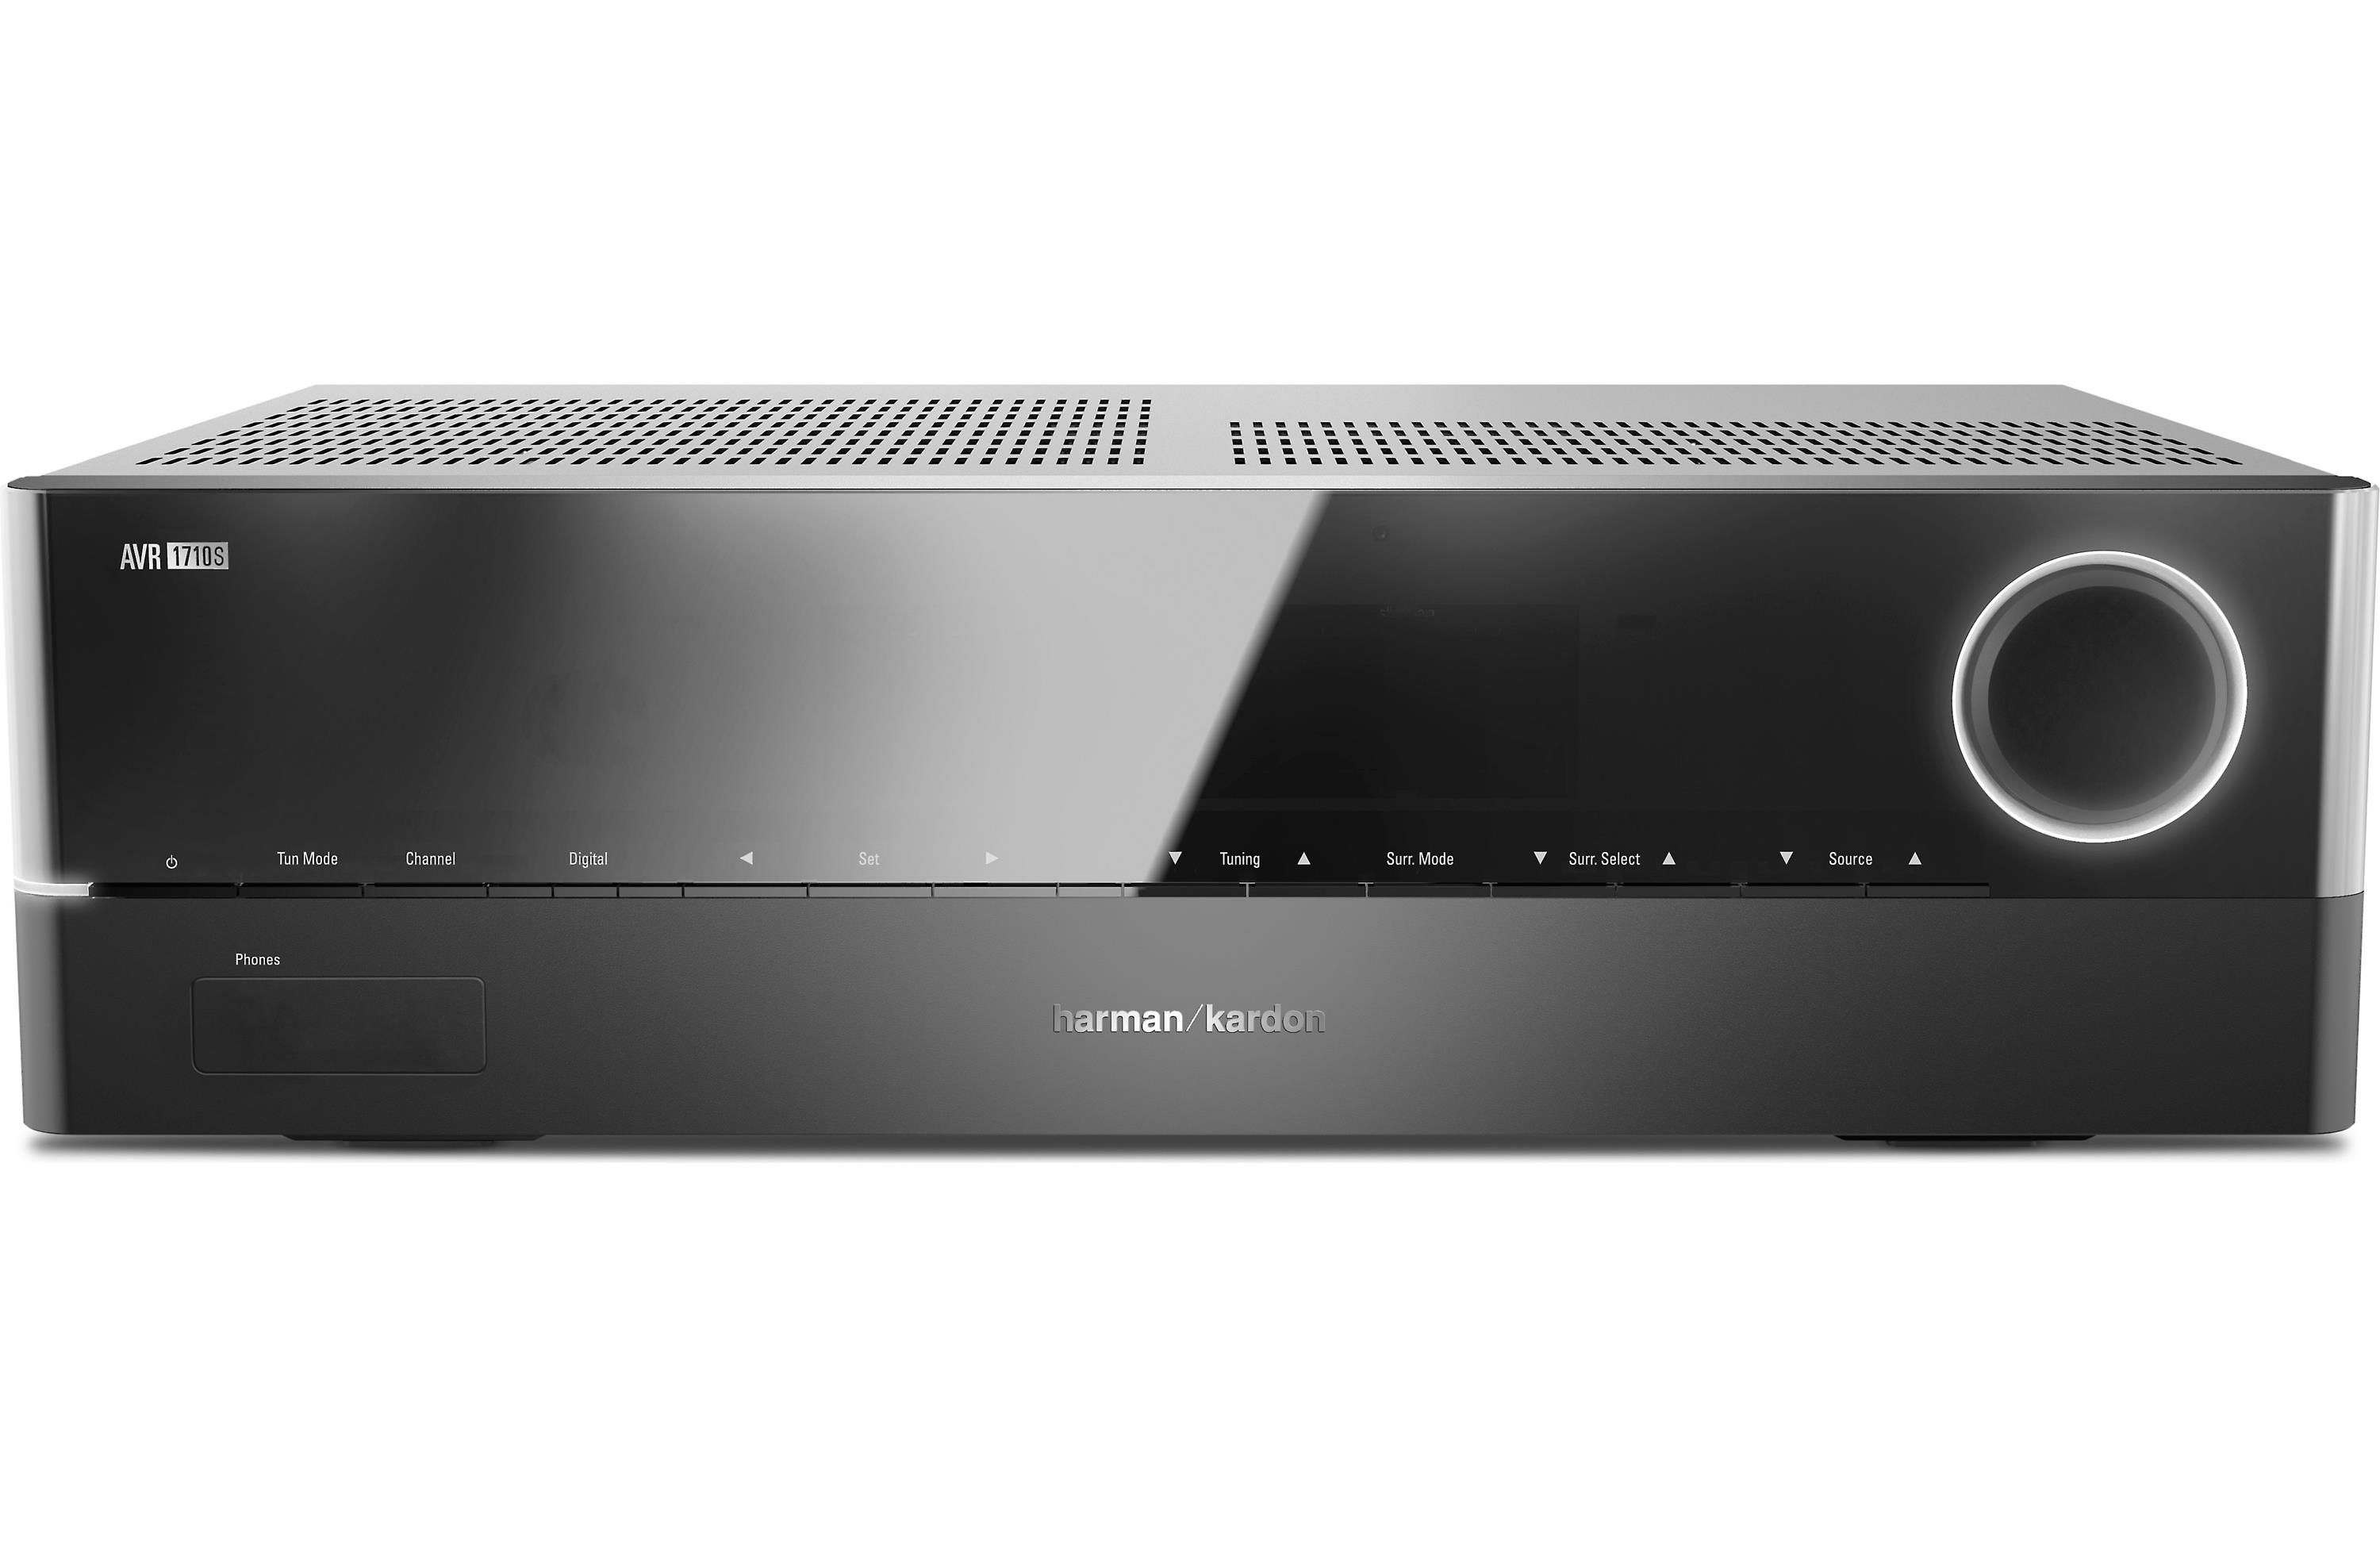 Harman Kardon AVR 1710S 7 2-channel home theater receiver with Bluetooth